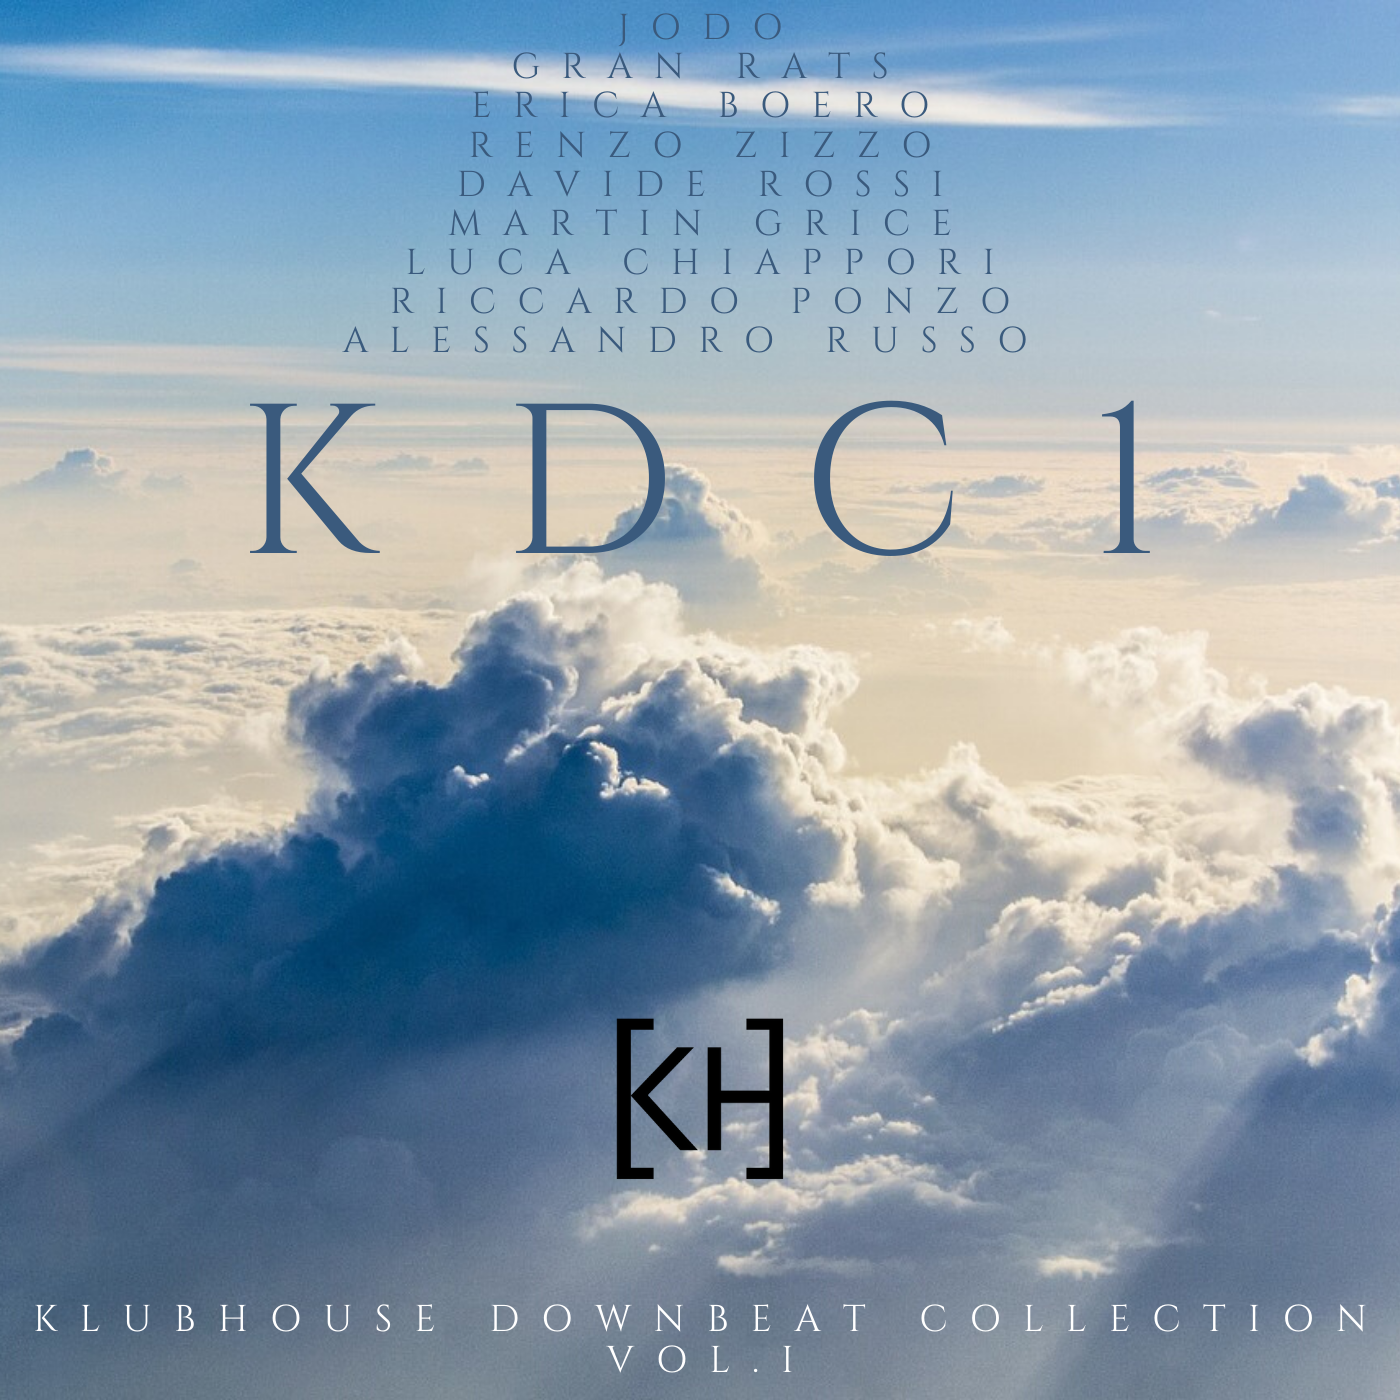 Klubhouse Downbeat Collection Vol.1